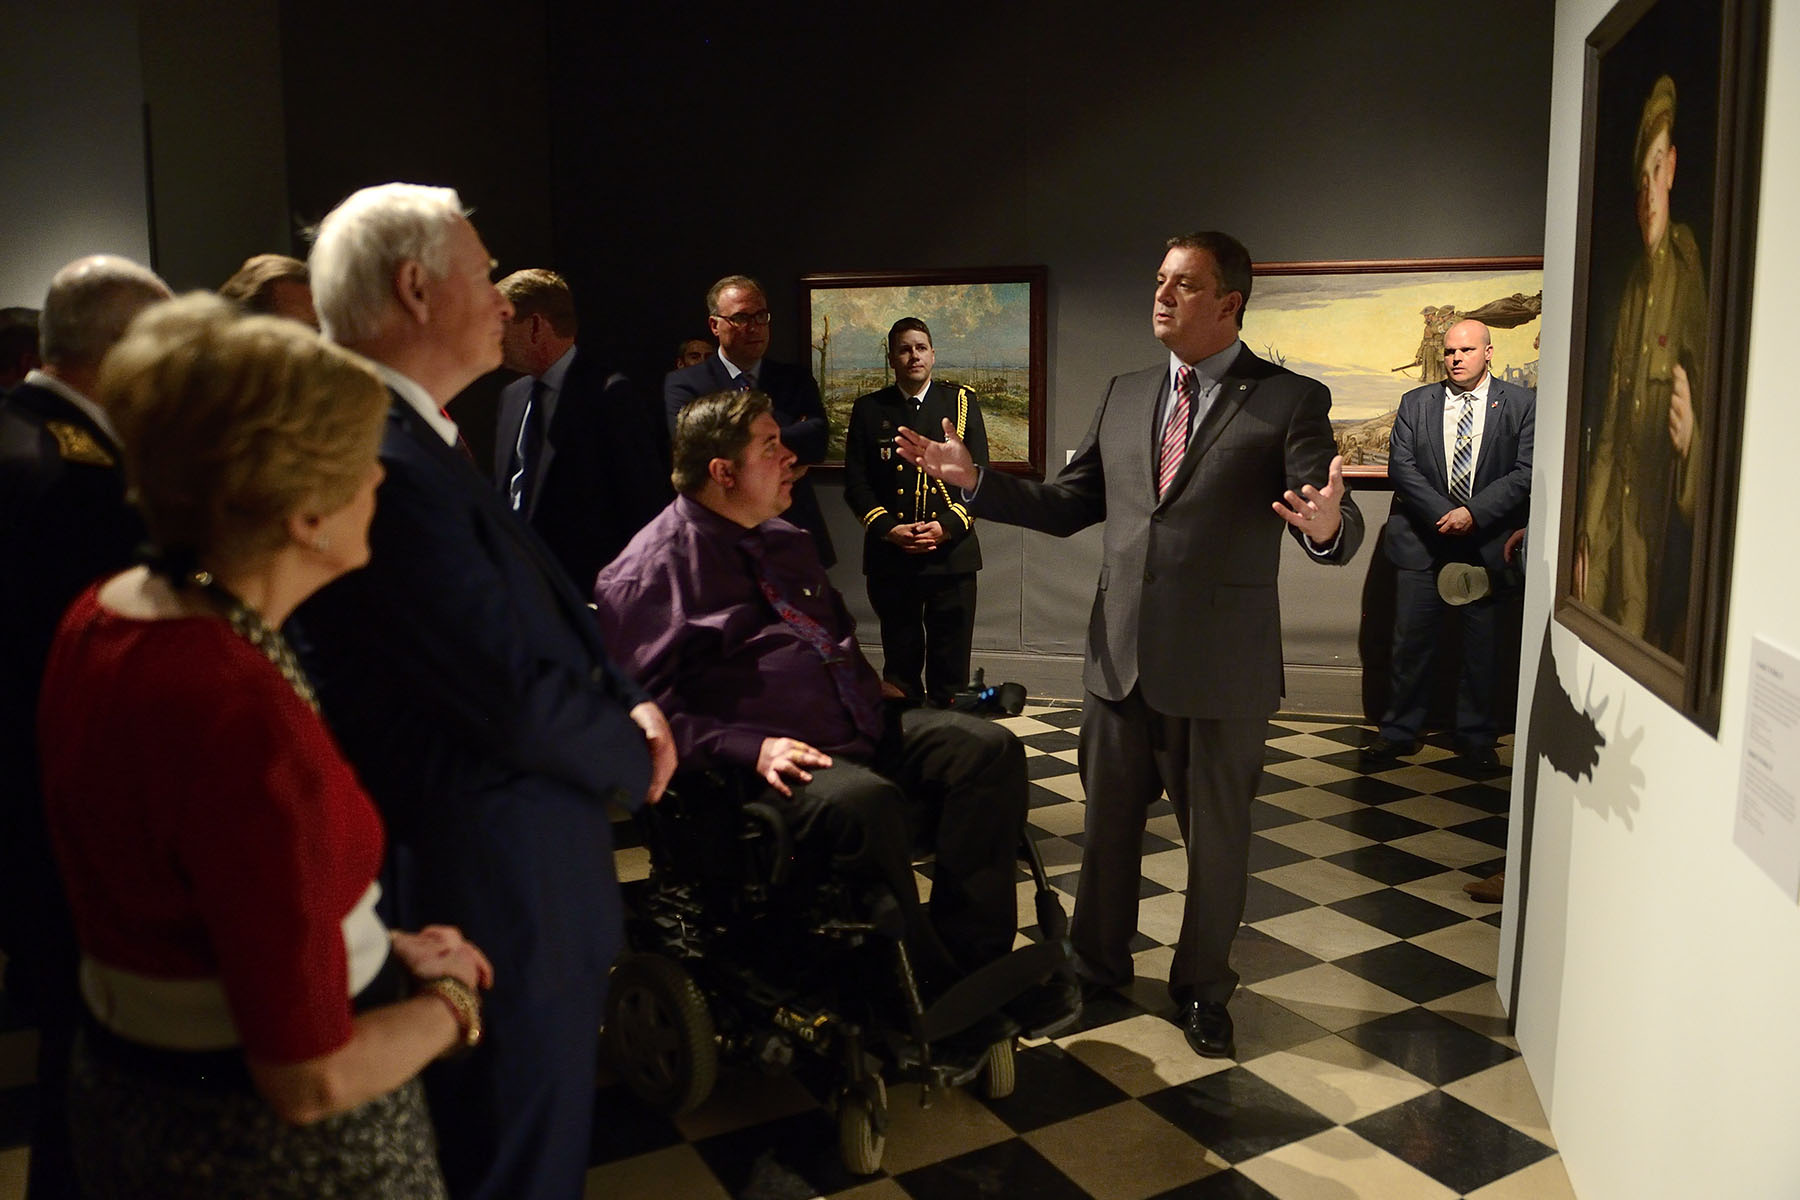 In the presence of First World War historians Dr. Tim Cook, C.M. and Dr. Melanie Morin-Pelletier, Their Excellencies learned more about the travelling exhibition. Featuring over 60 works of art, including masterpieces by Canadian artists A.Y. Jackson and Frederick Varley, it also portrays personal works created by soldiers posted in l'Artois in 1917 and sent to their families back home.